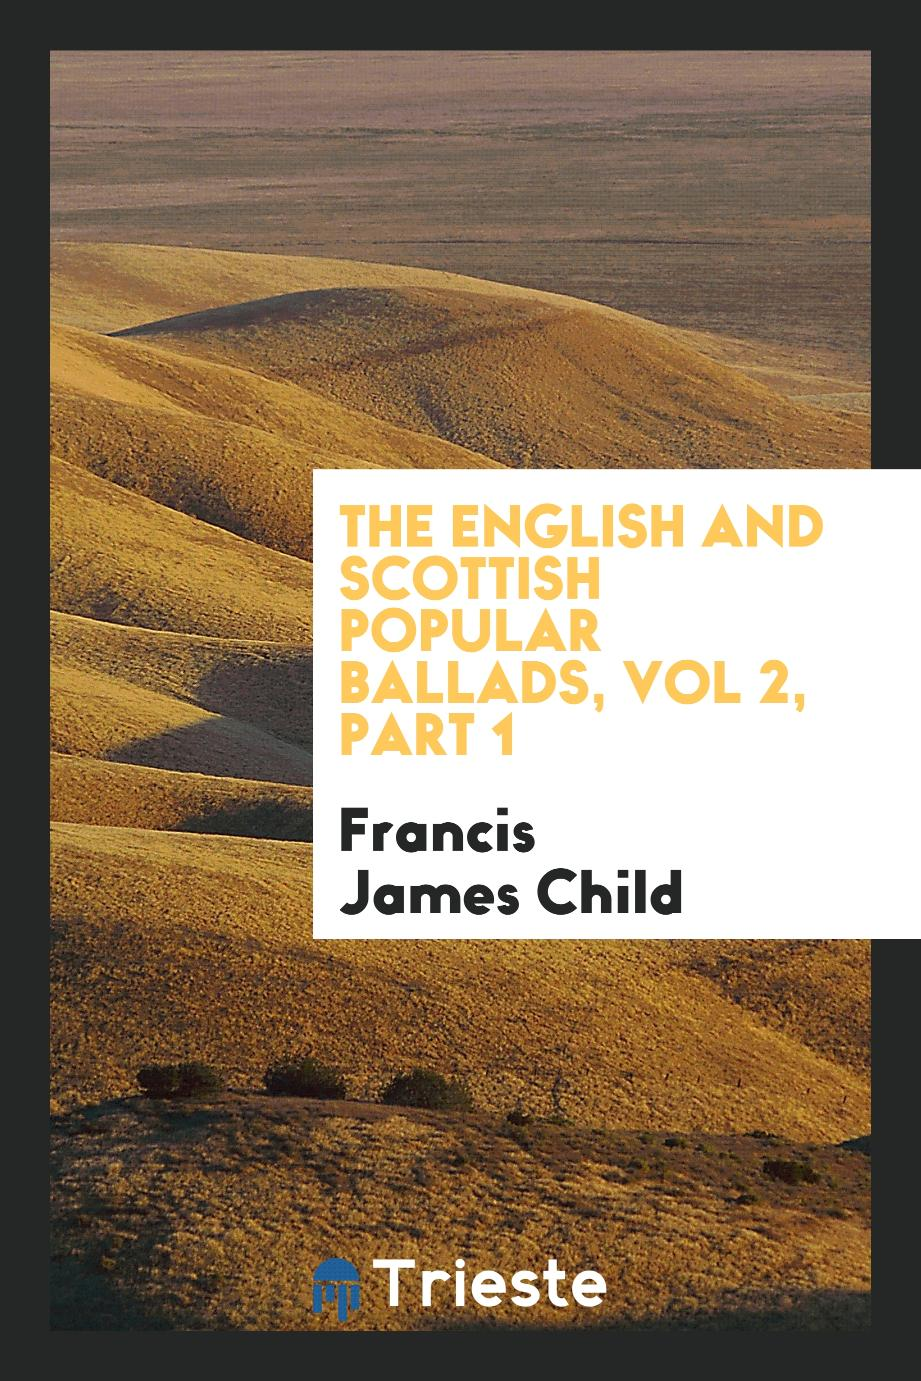 The English and Scottish popular ballads, Vol 2, Part 1